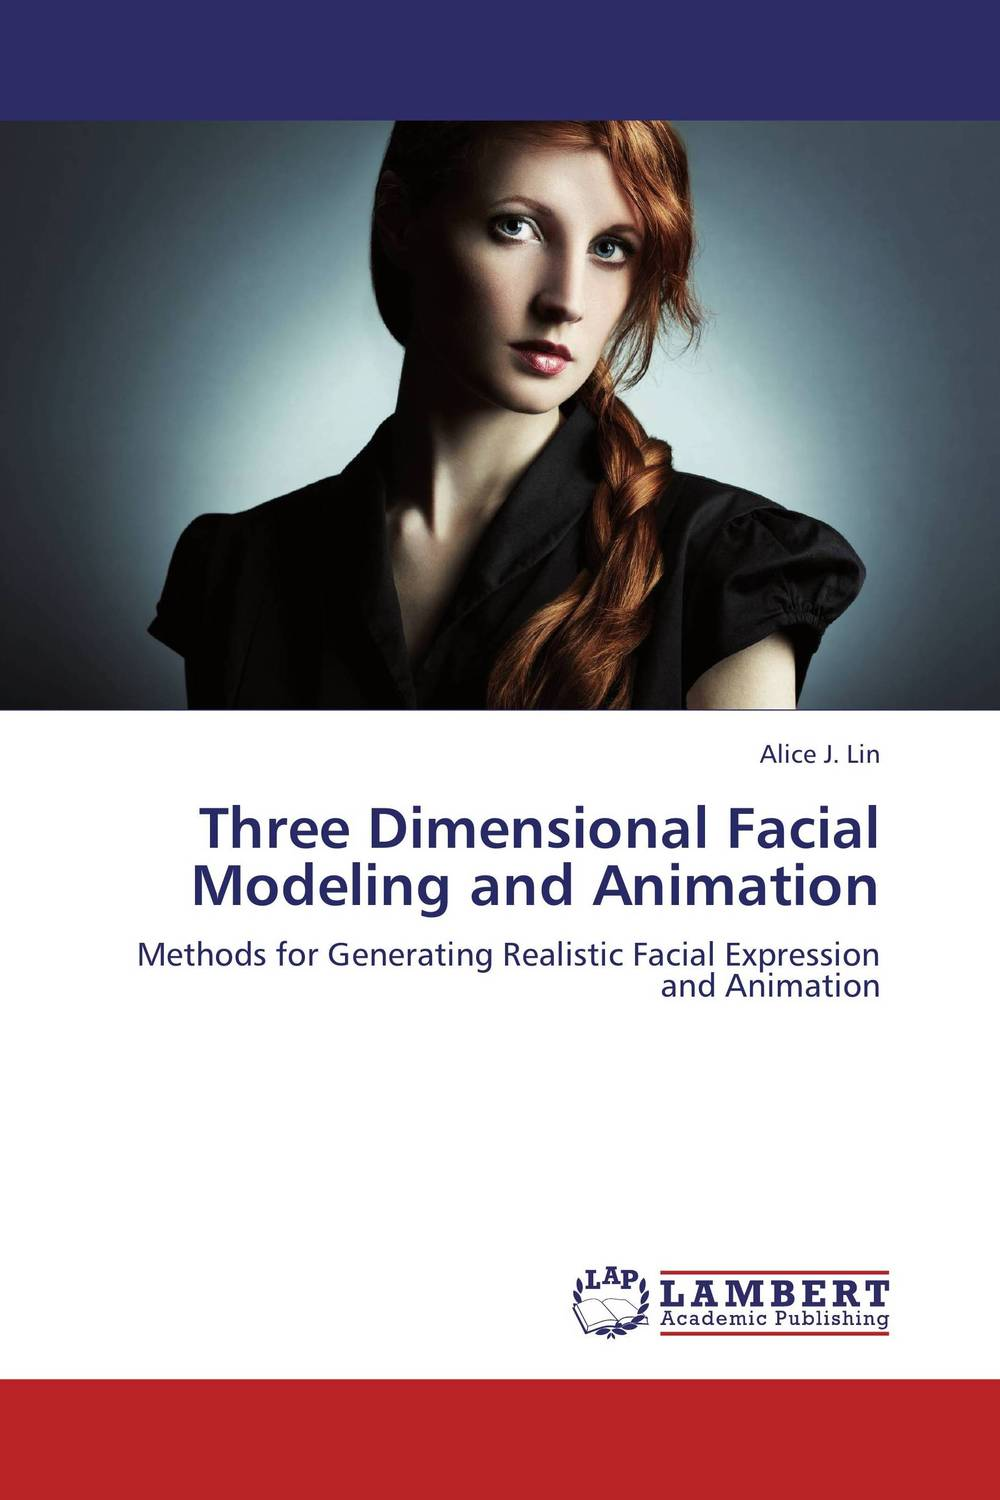 Three Dimensional Facial Modeling and Animation firas abdullah thweny al saedi and fadi khalid ibrahim al khalidi design of a three dimensional virtual reality environment